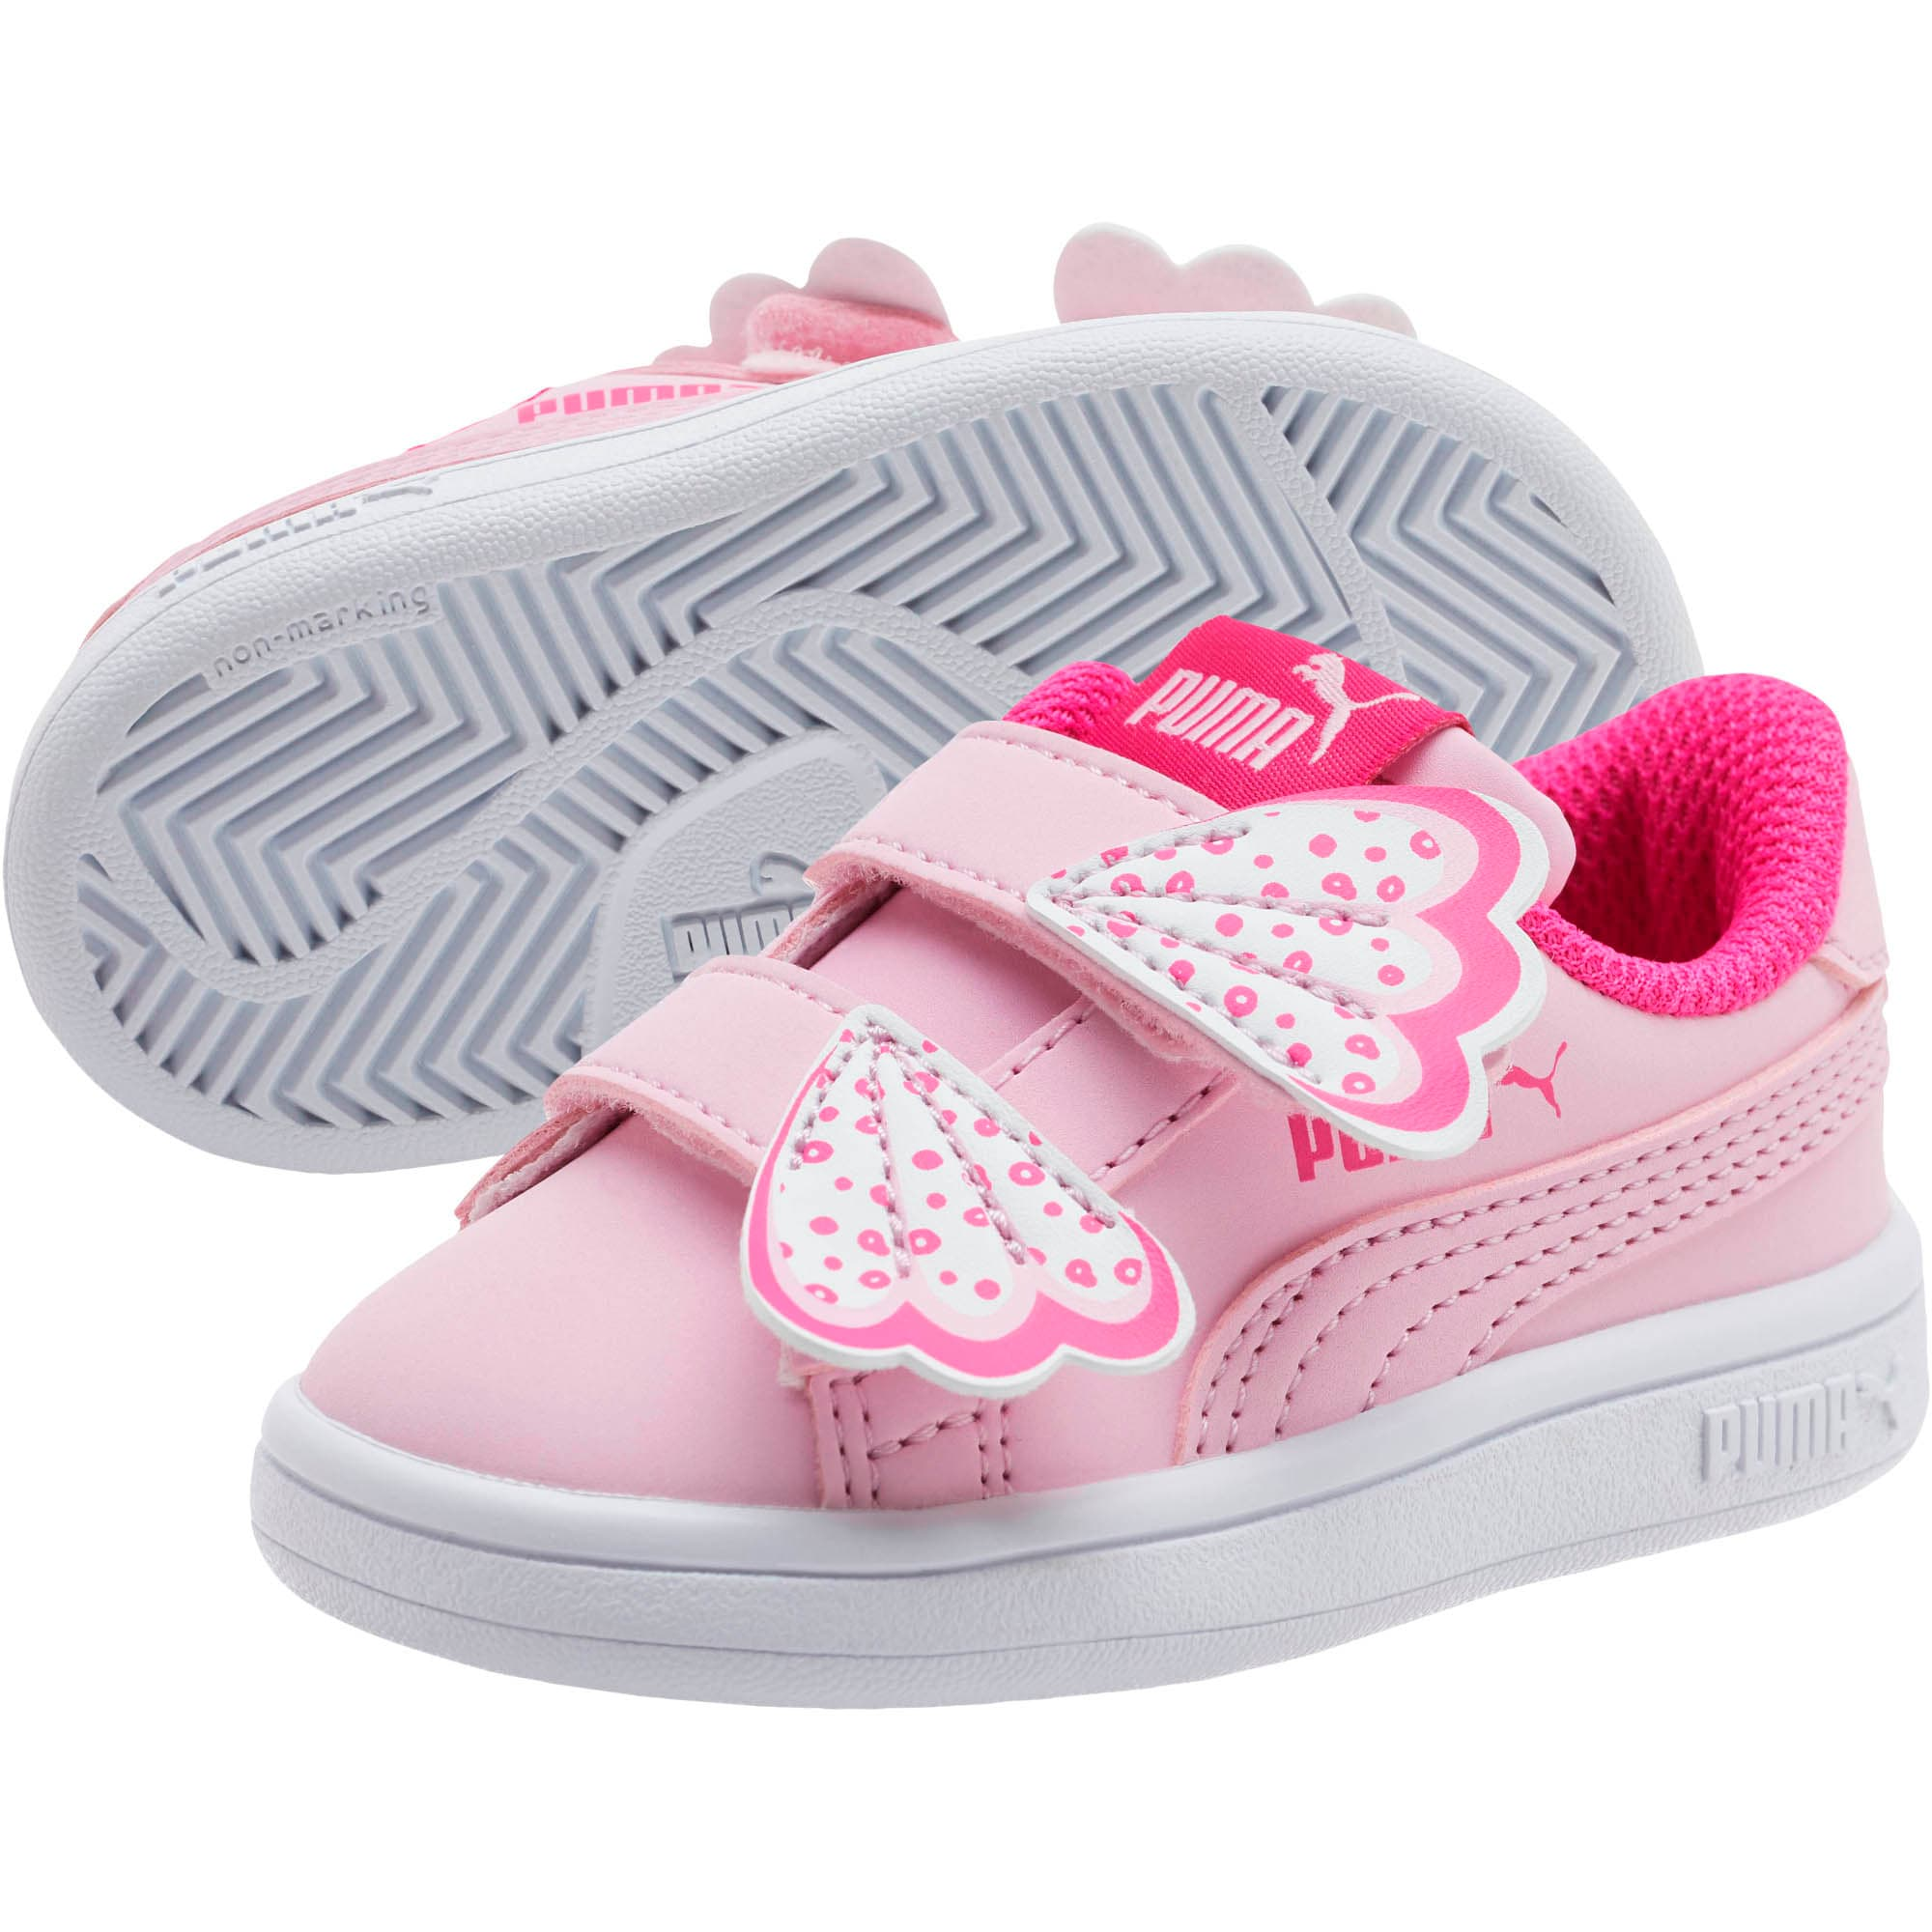 Thumbnail 2 of PUMA Smash v2 Butterfly AC Toddler Shoes, Pale Pink-F Purple-White, medium